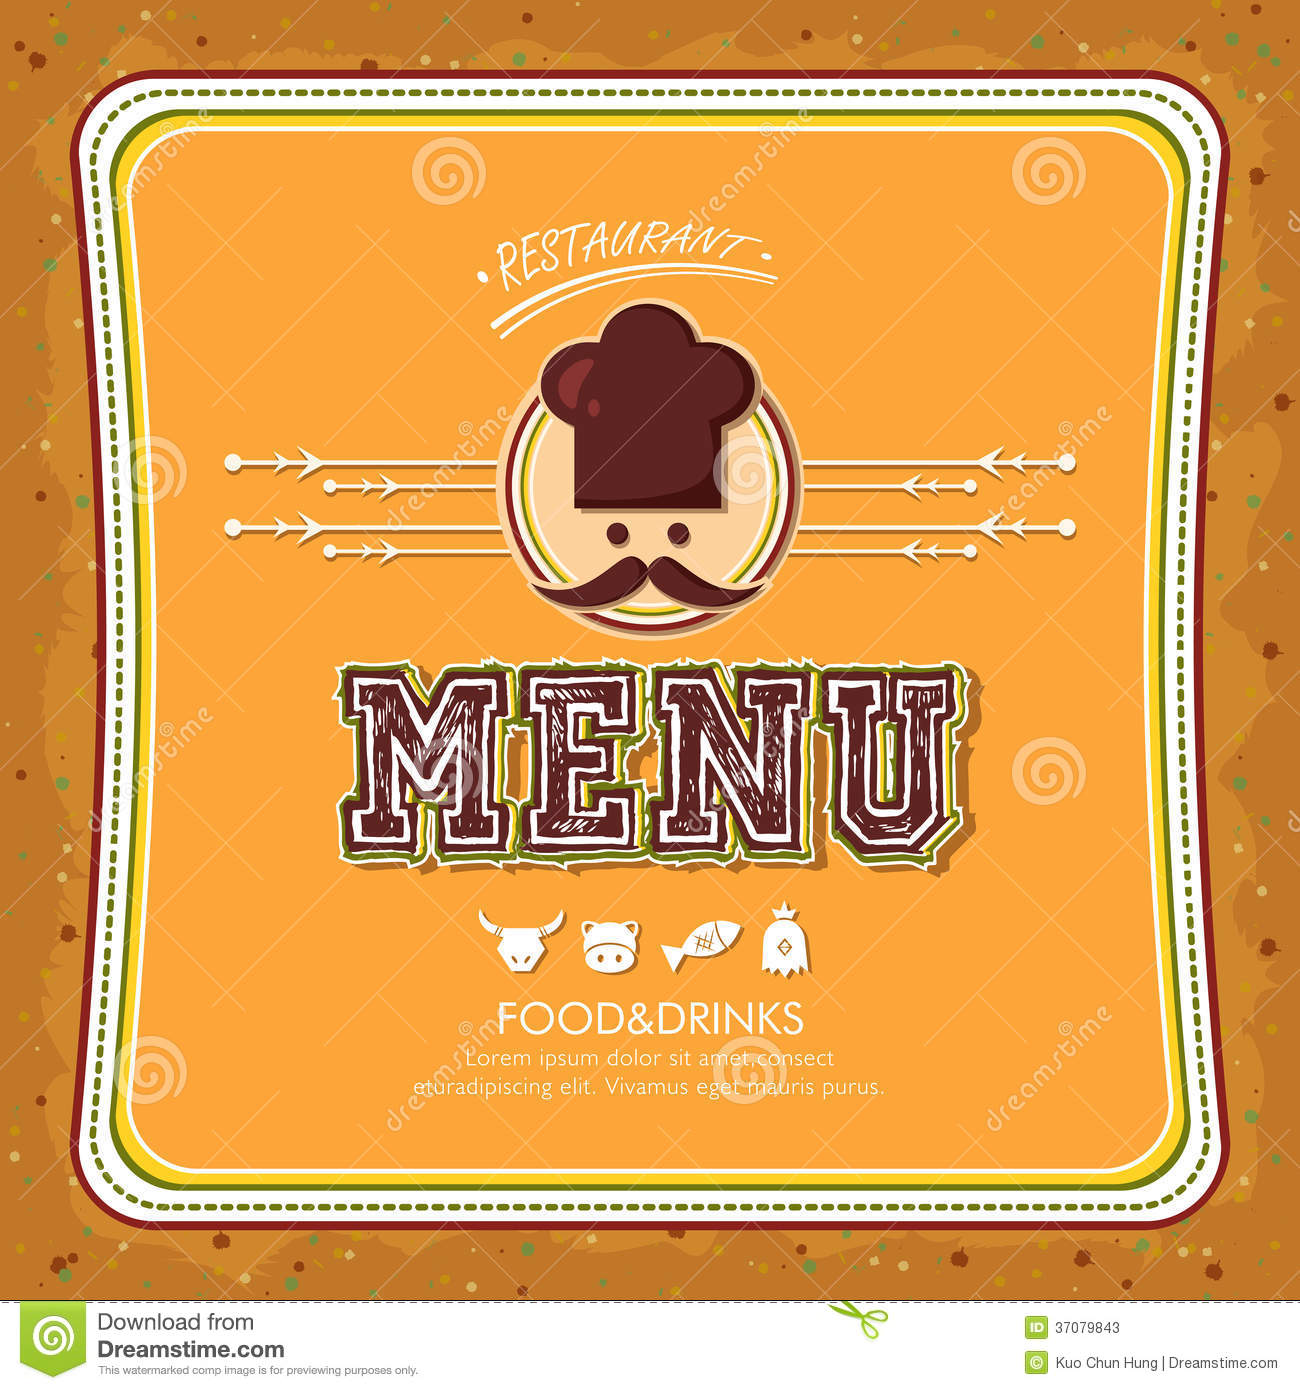 Restaurant menu stock photos image